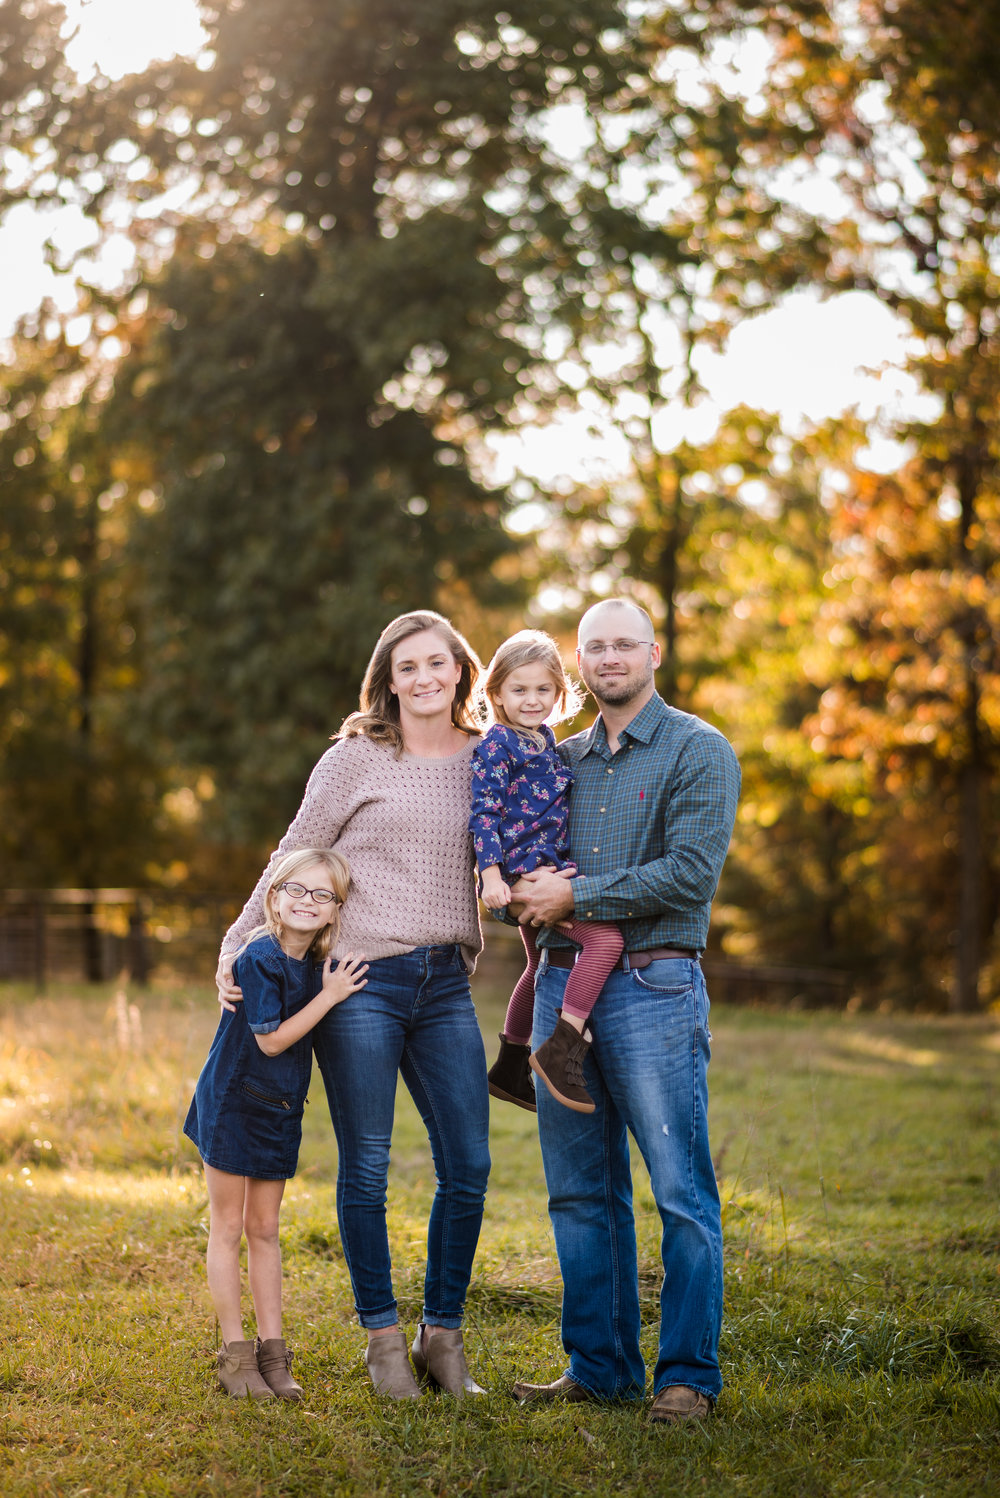 Family Portraiture - A combination of traditional and lifestyle imagery creates fun, gallery-wall worthy photographs that perfectly capture your family as you are. Let them be spunky and a little mismatched, and let ME turn that into art! Family portrait packages start at $215, so there's an option for almost any budget! Contact me to book your session today!